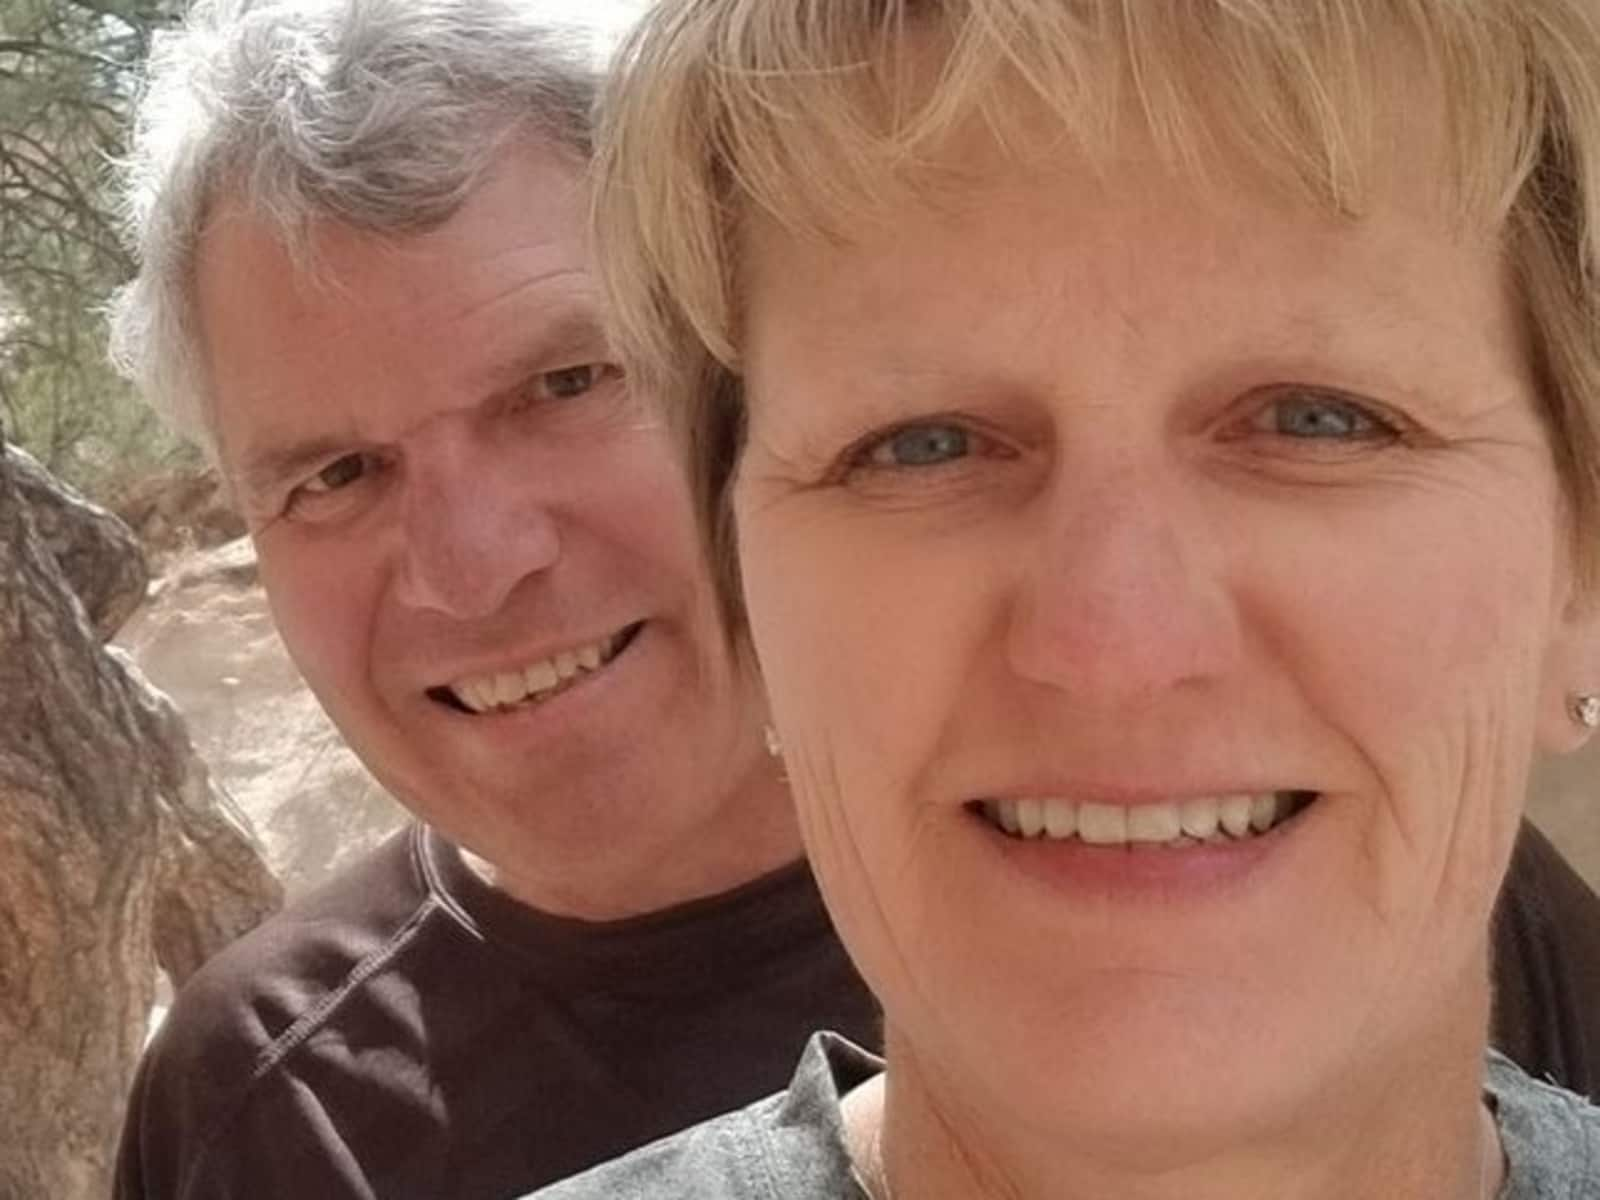 Kathy andy phillip & Phillip from Green River, Wyoming, United States